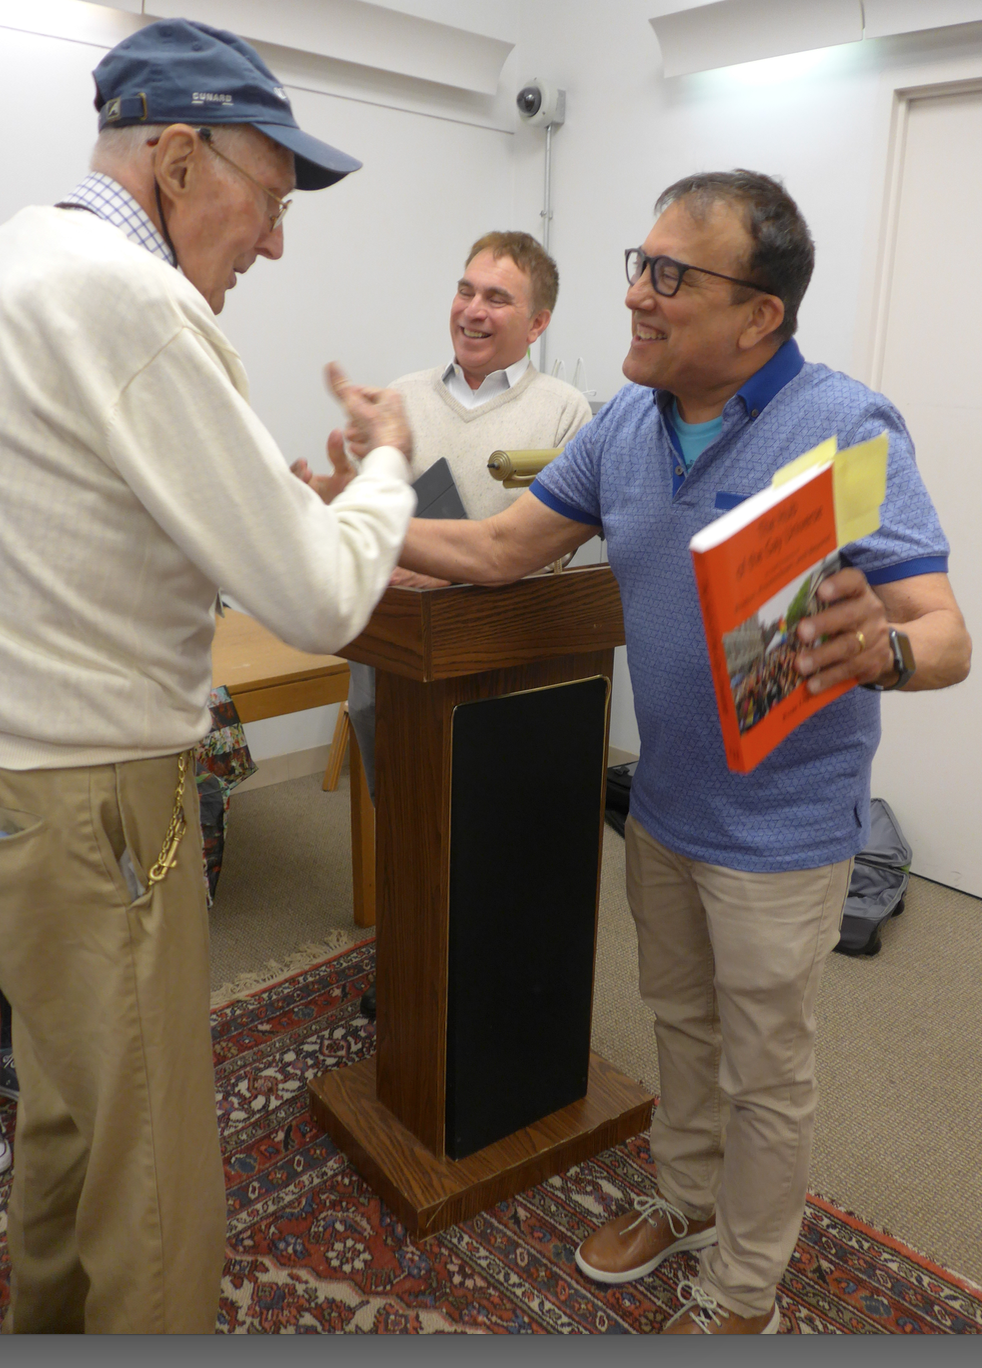 Urban historian, Russ Lopez, greets new South End resident John Thomson